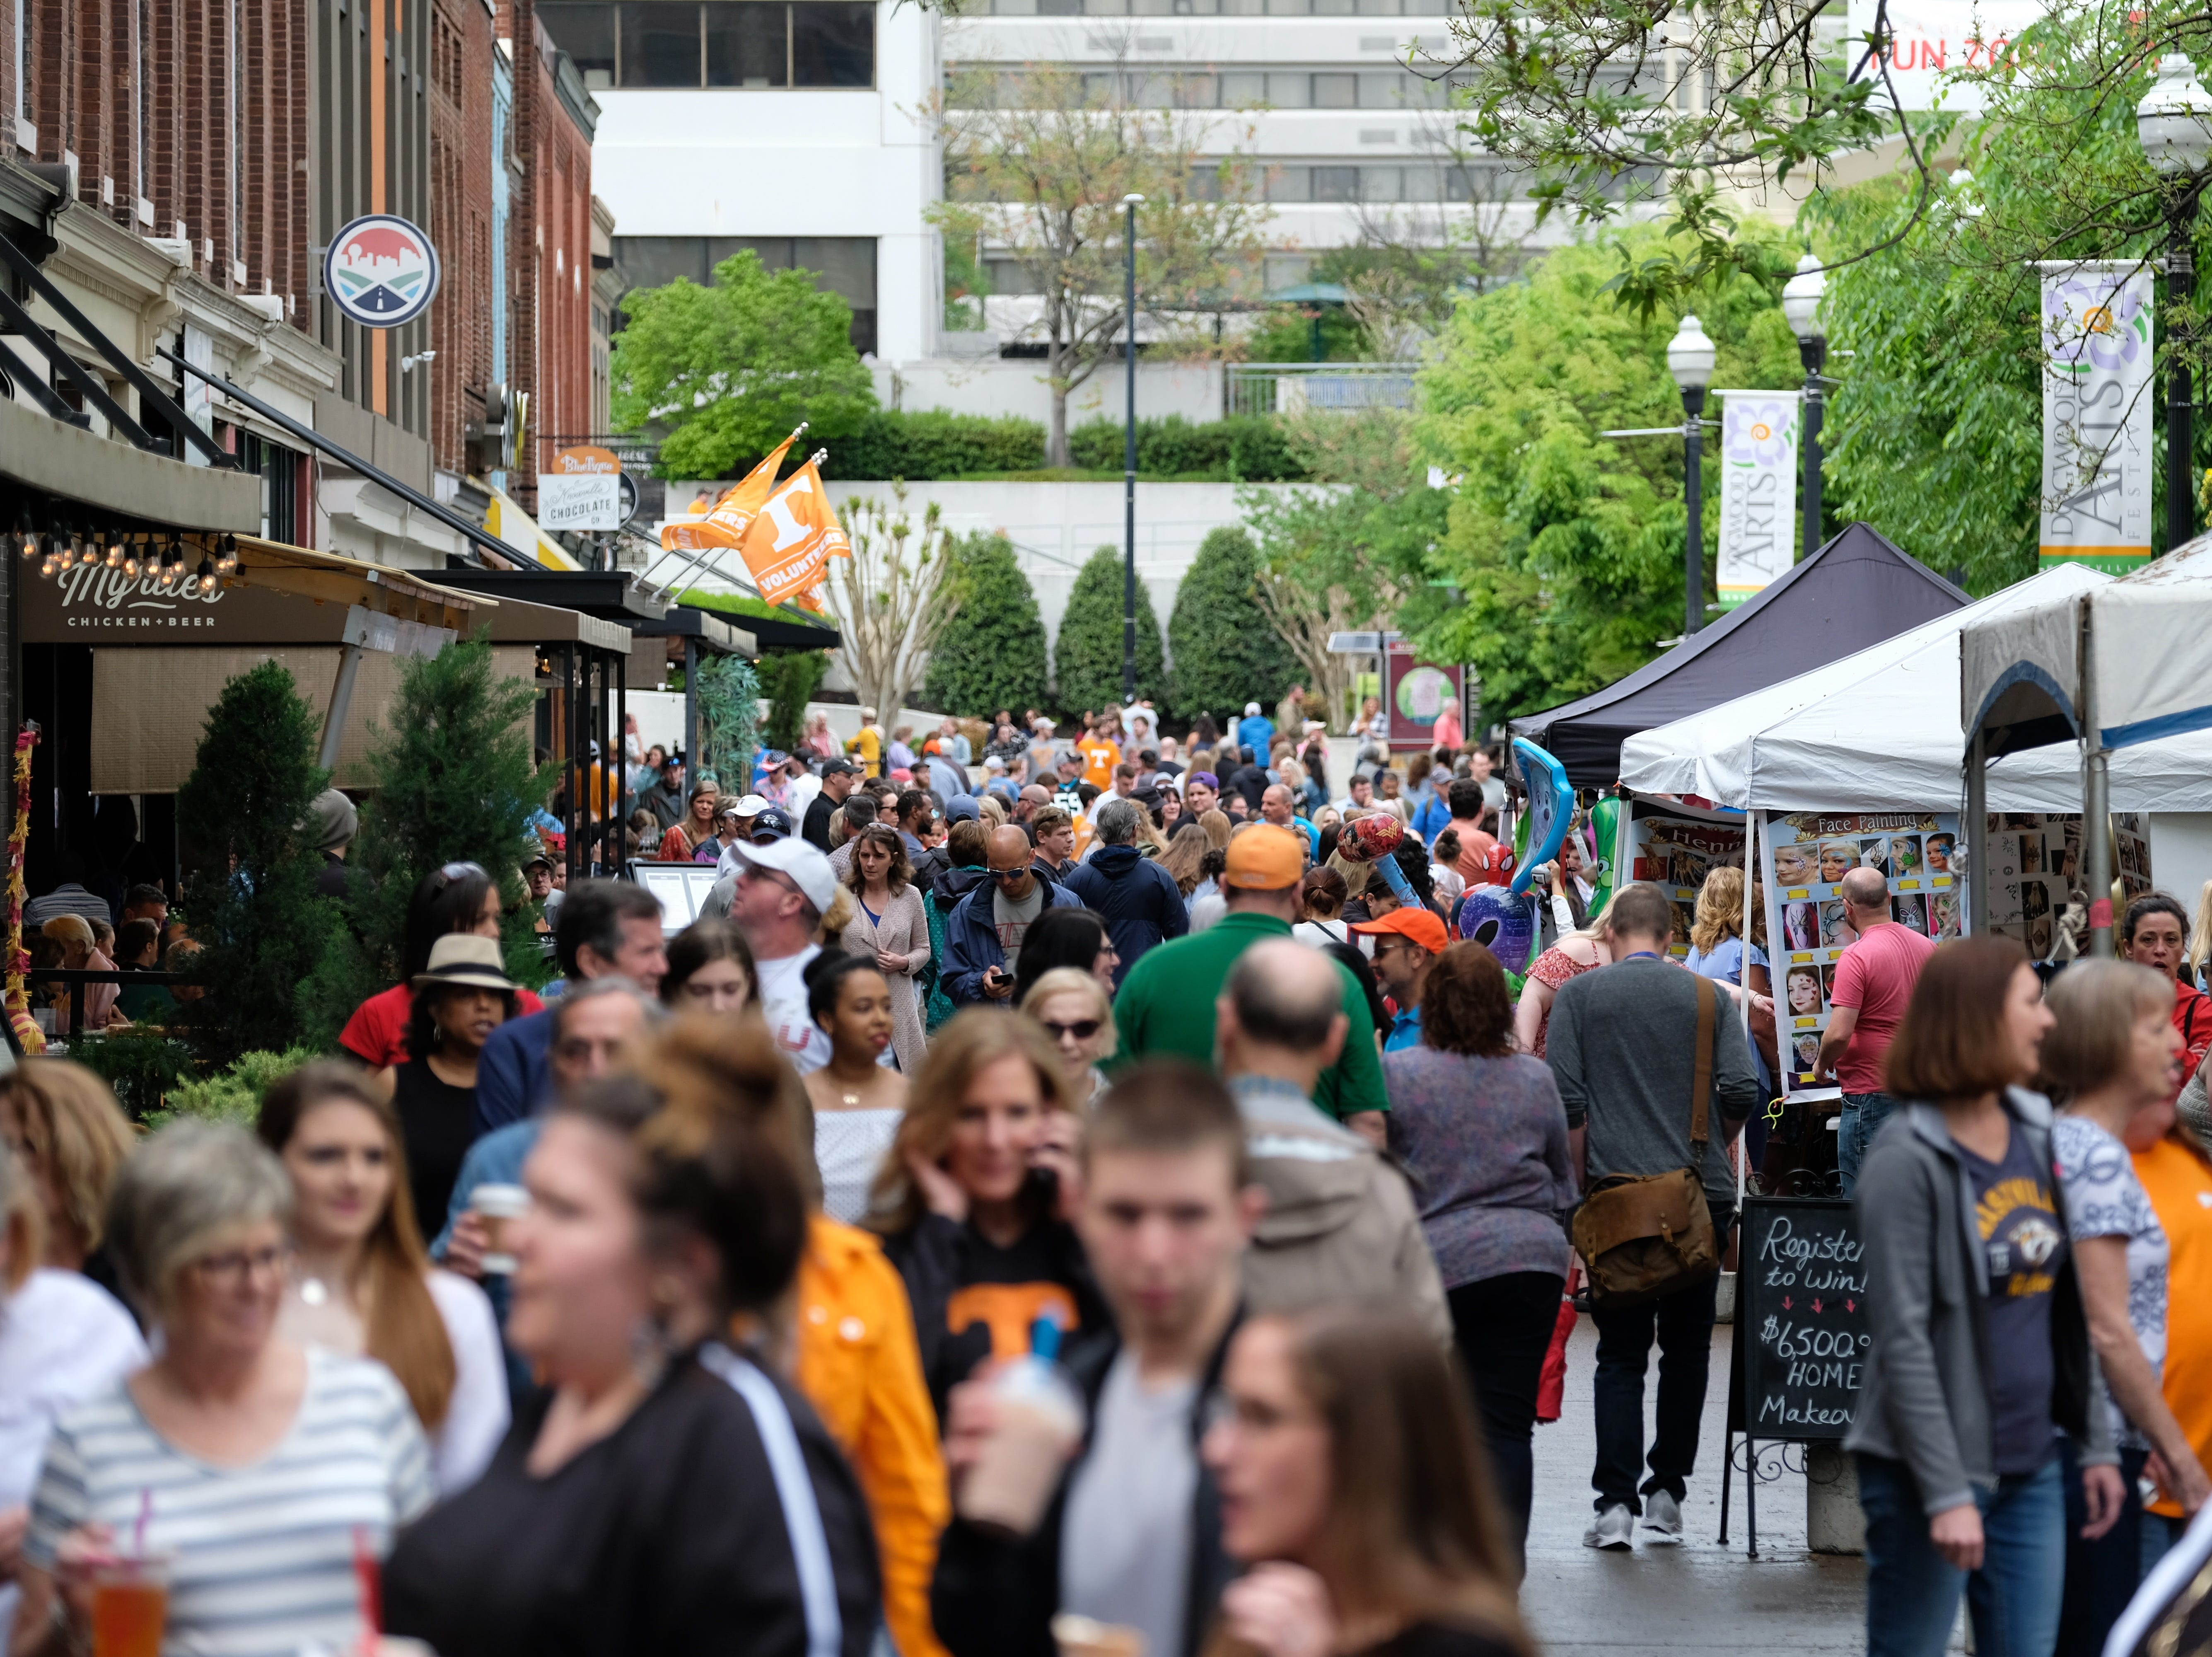 Festival goers make their way through the Rossini Festival in Knoxville on Saturday, April 13, 2019. (Shawn Millsaps/Special to News Sentinel)